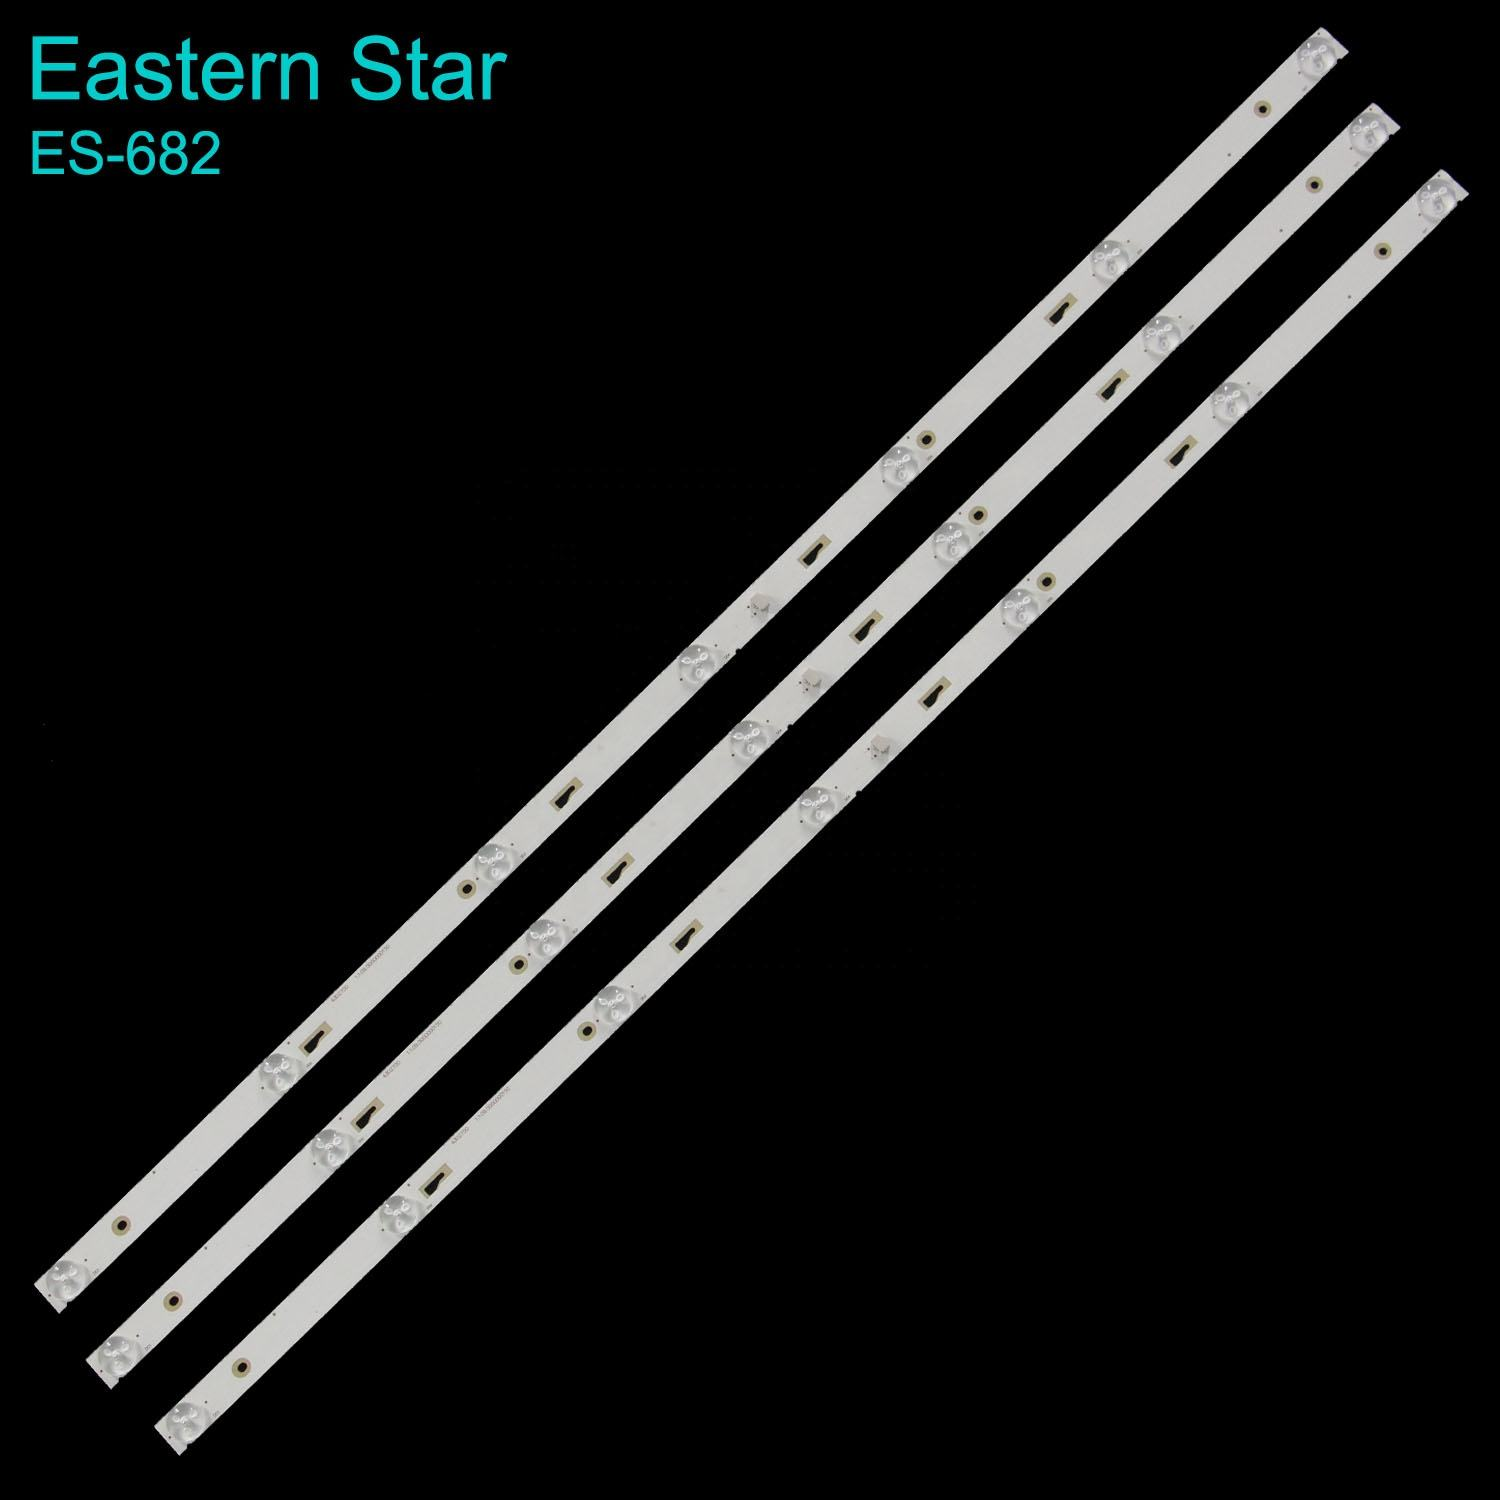 ES-682 LED backlight strip 43D2700 3*7 43HR332M07A0 V2 use for TCL 43A9000 3PCS/set 755MM